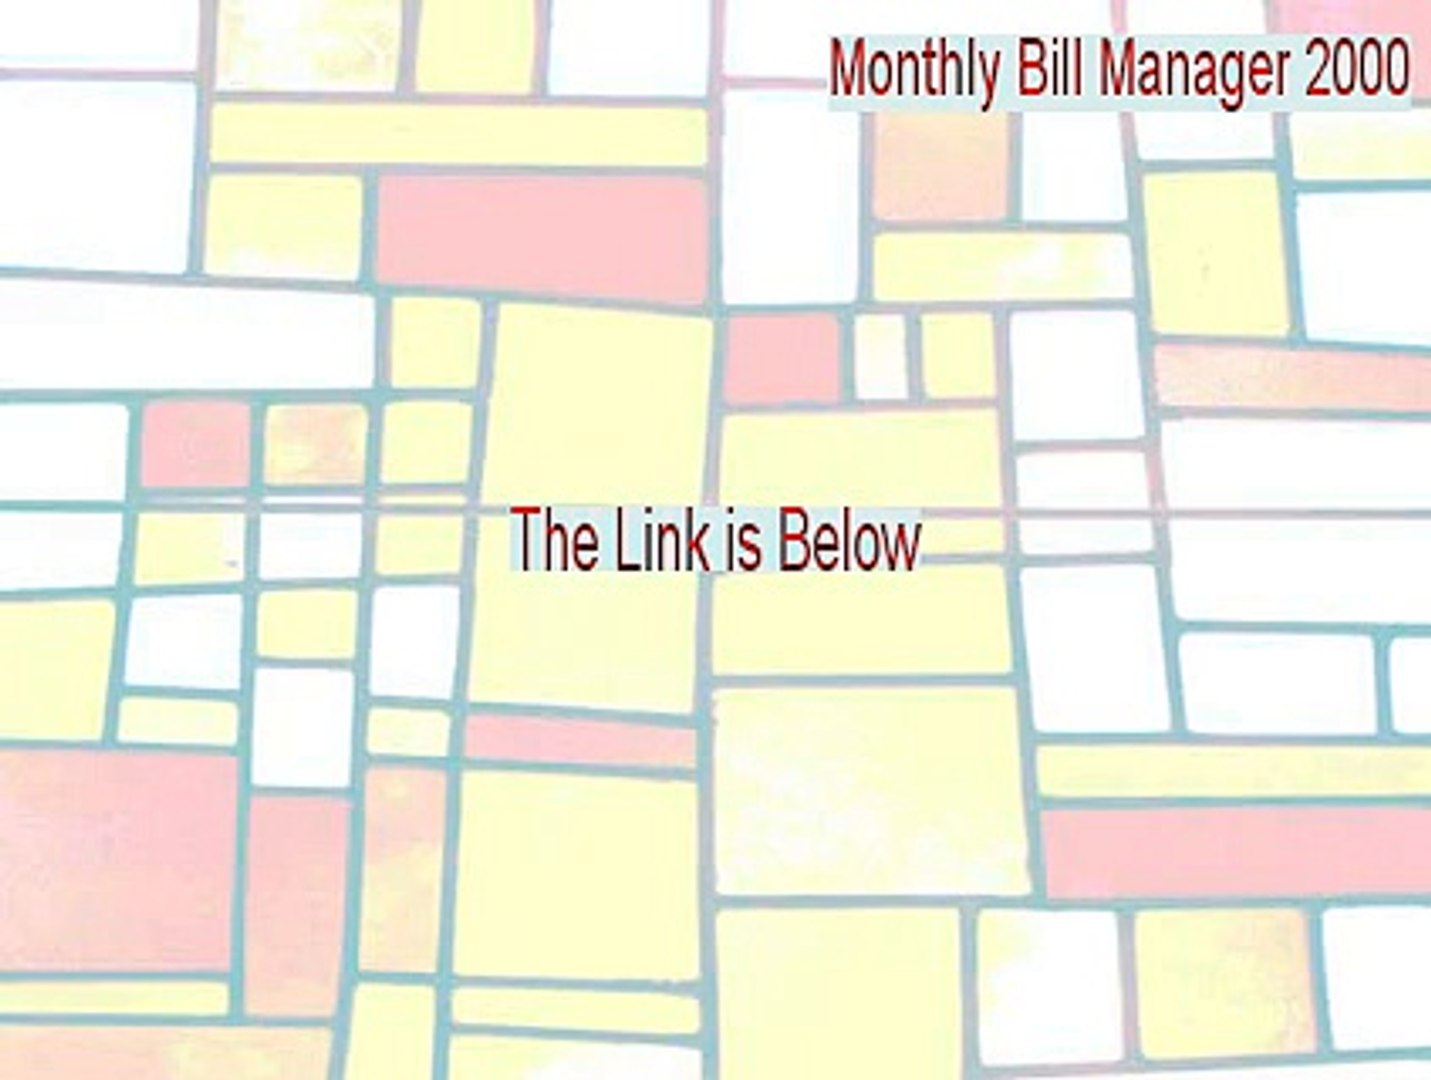 Monthly Bill Manager 2000 Download Free [Monthly Bill Manager 2000monthly bill manager 2000 2015]